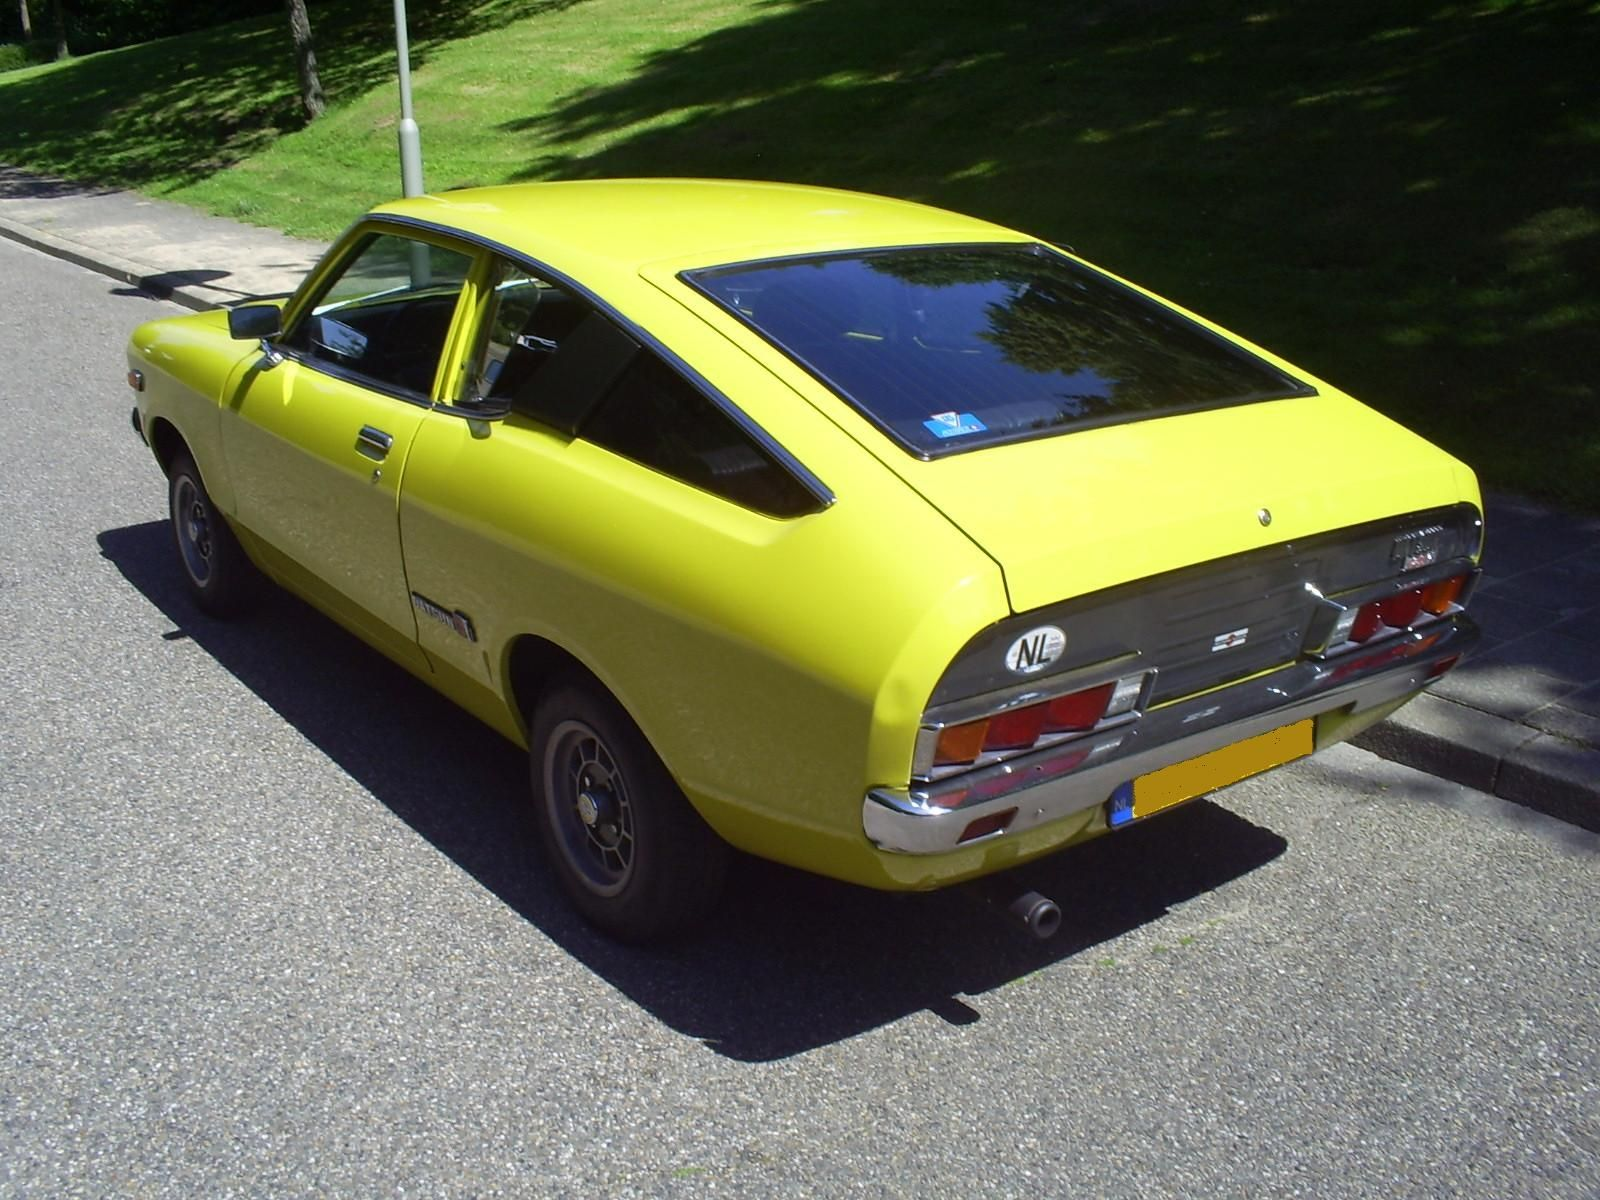 pin by ranger minney on cars datsun sunny 120y b210 fastback